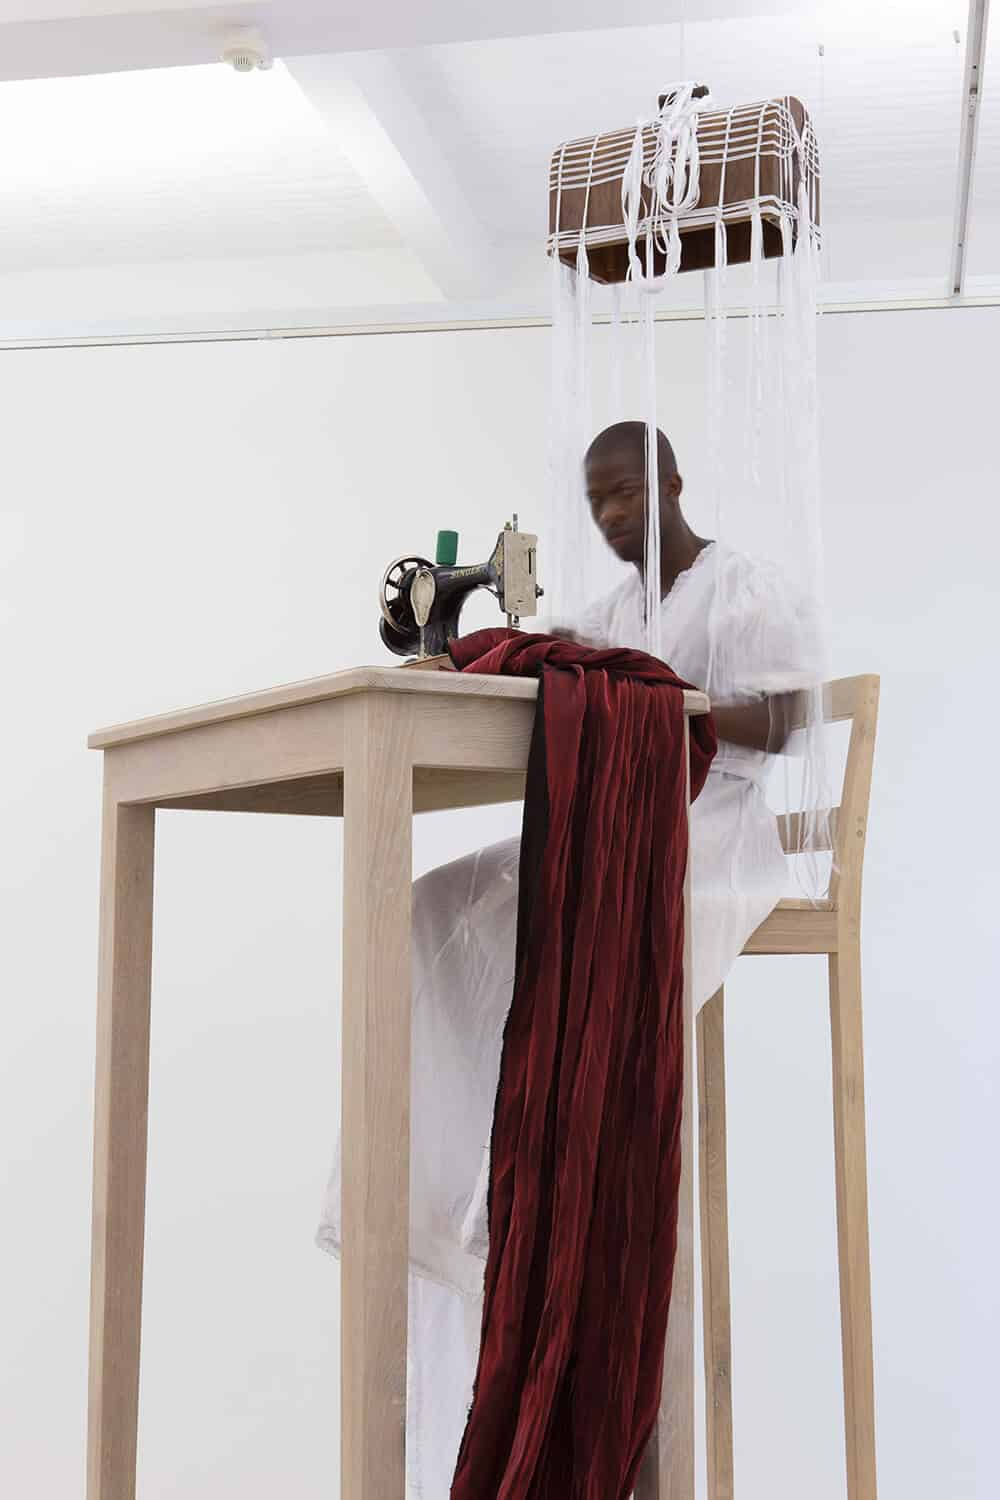 Nicholas Hlobo, UmBhovuzo: The Parable of the Sower, 2016. Performance. © Nicholas Hlobo. Courtesy of Stevenson, Cape Town and Johannesburg. Photo: Mario Todeschini